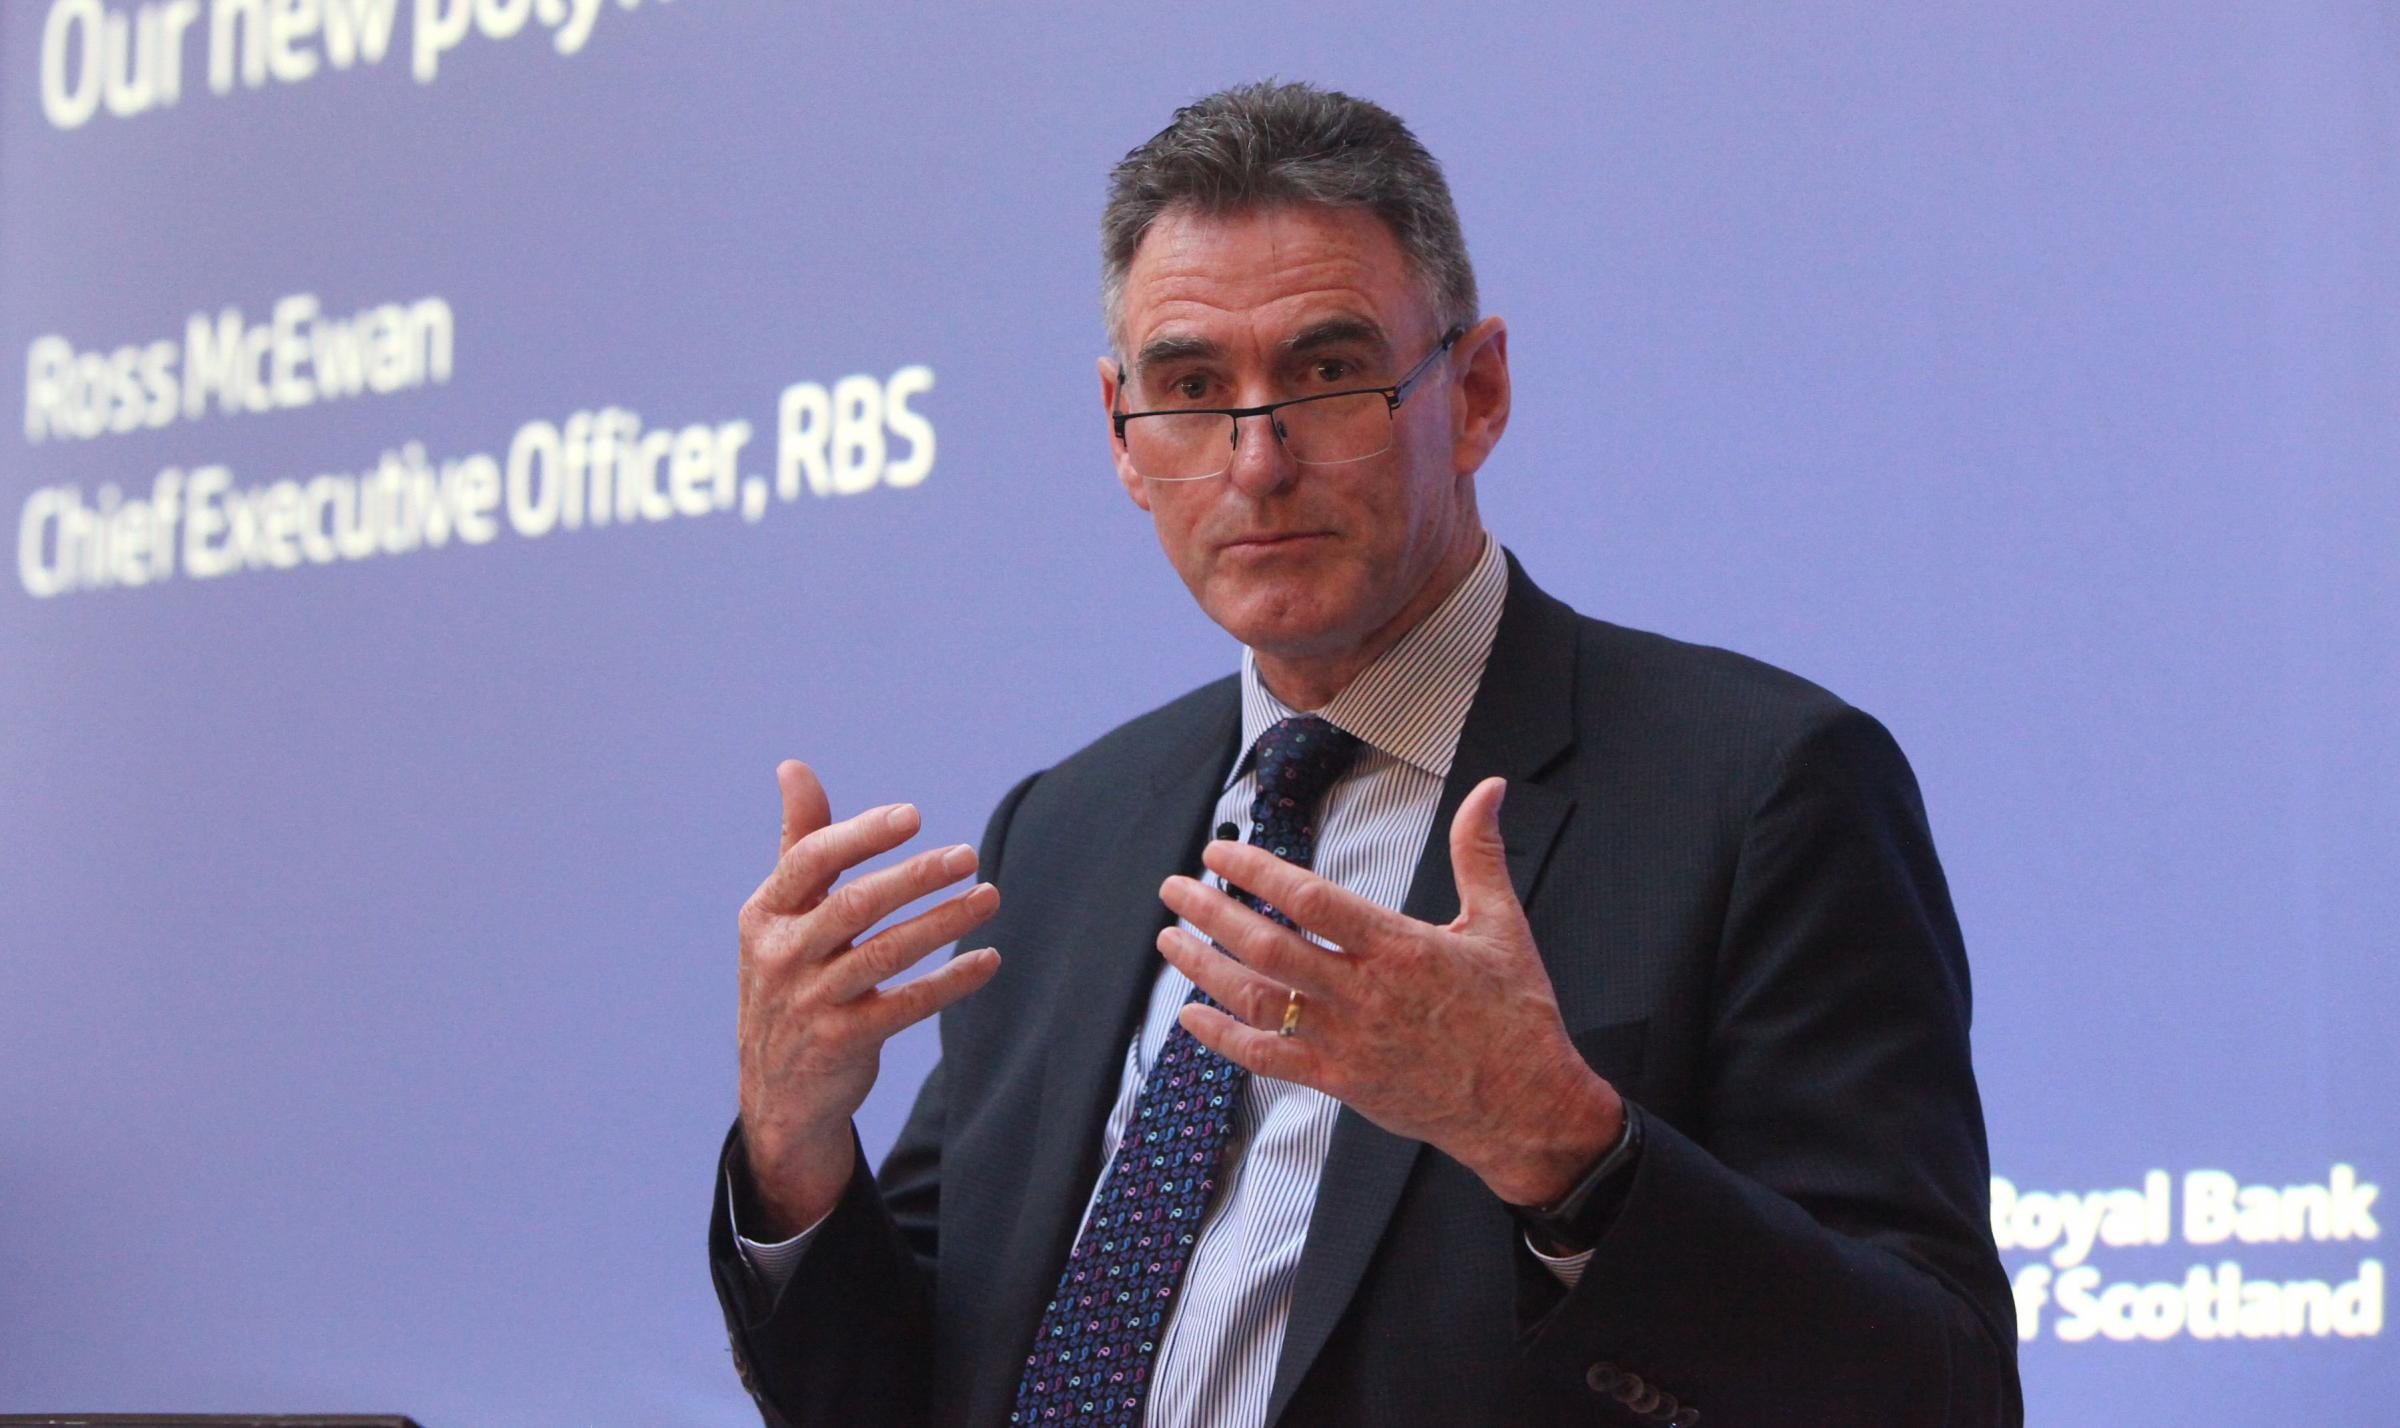 The Royal Bank of Scotland, but for how much longer?